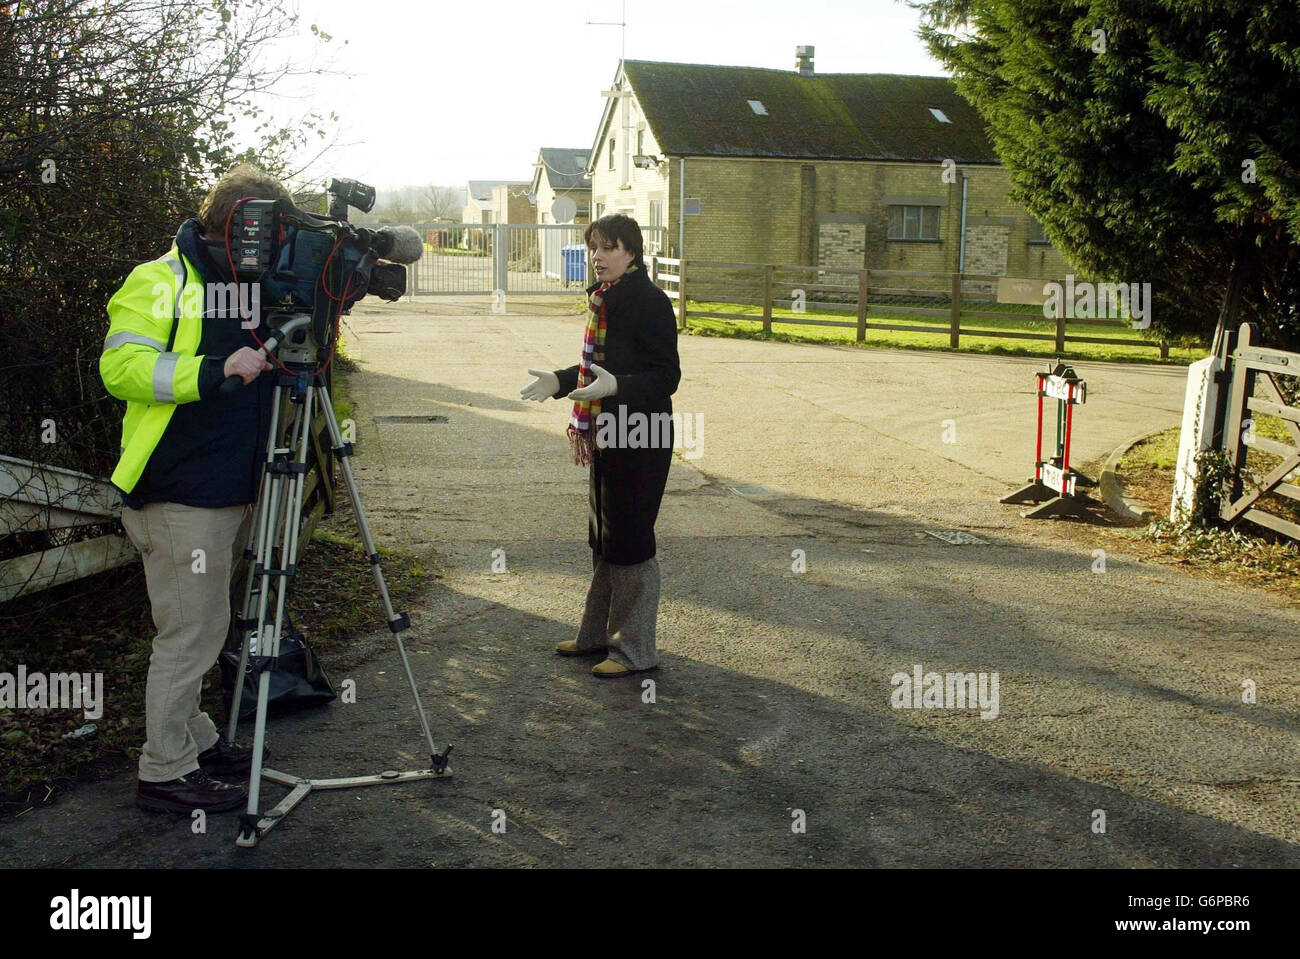 A TV crew stand at Cambridge University - Stock Image